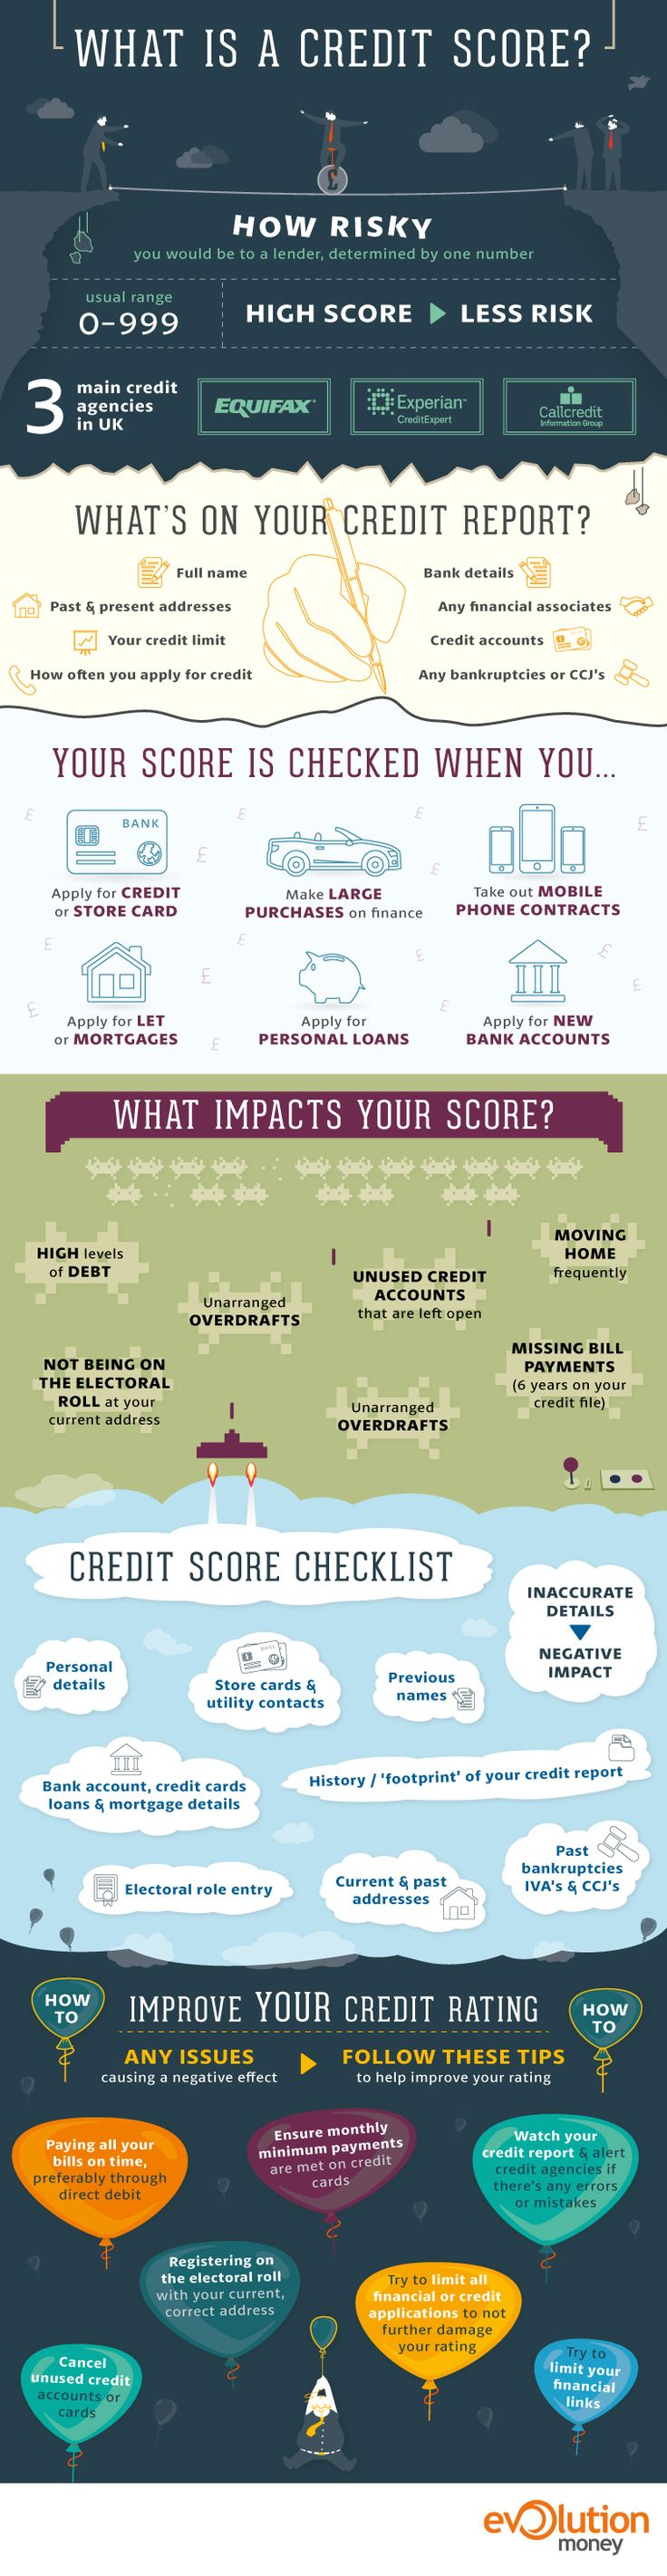 What Is A Credit Score? [infographic